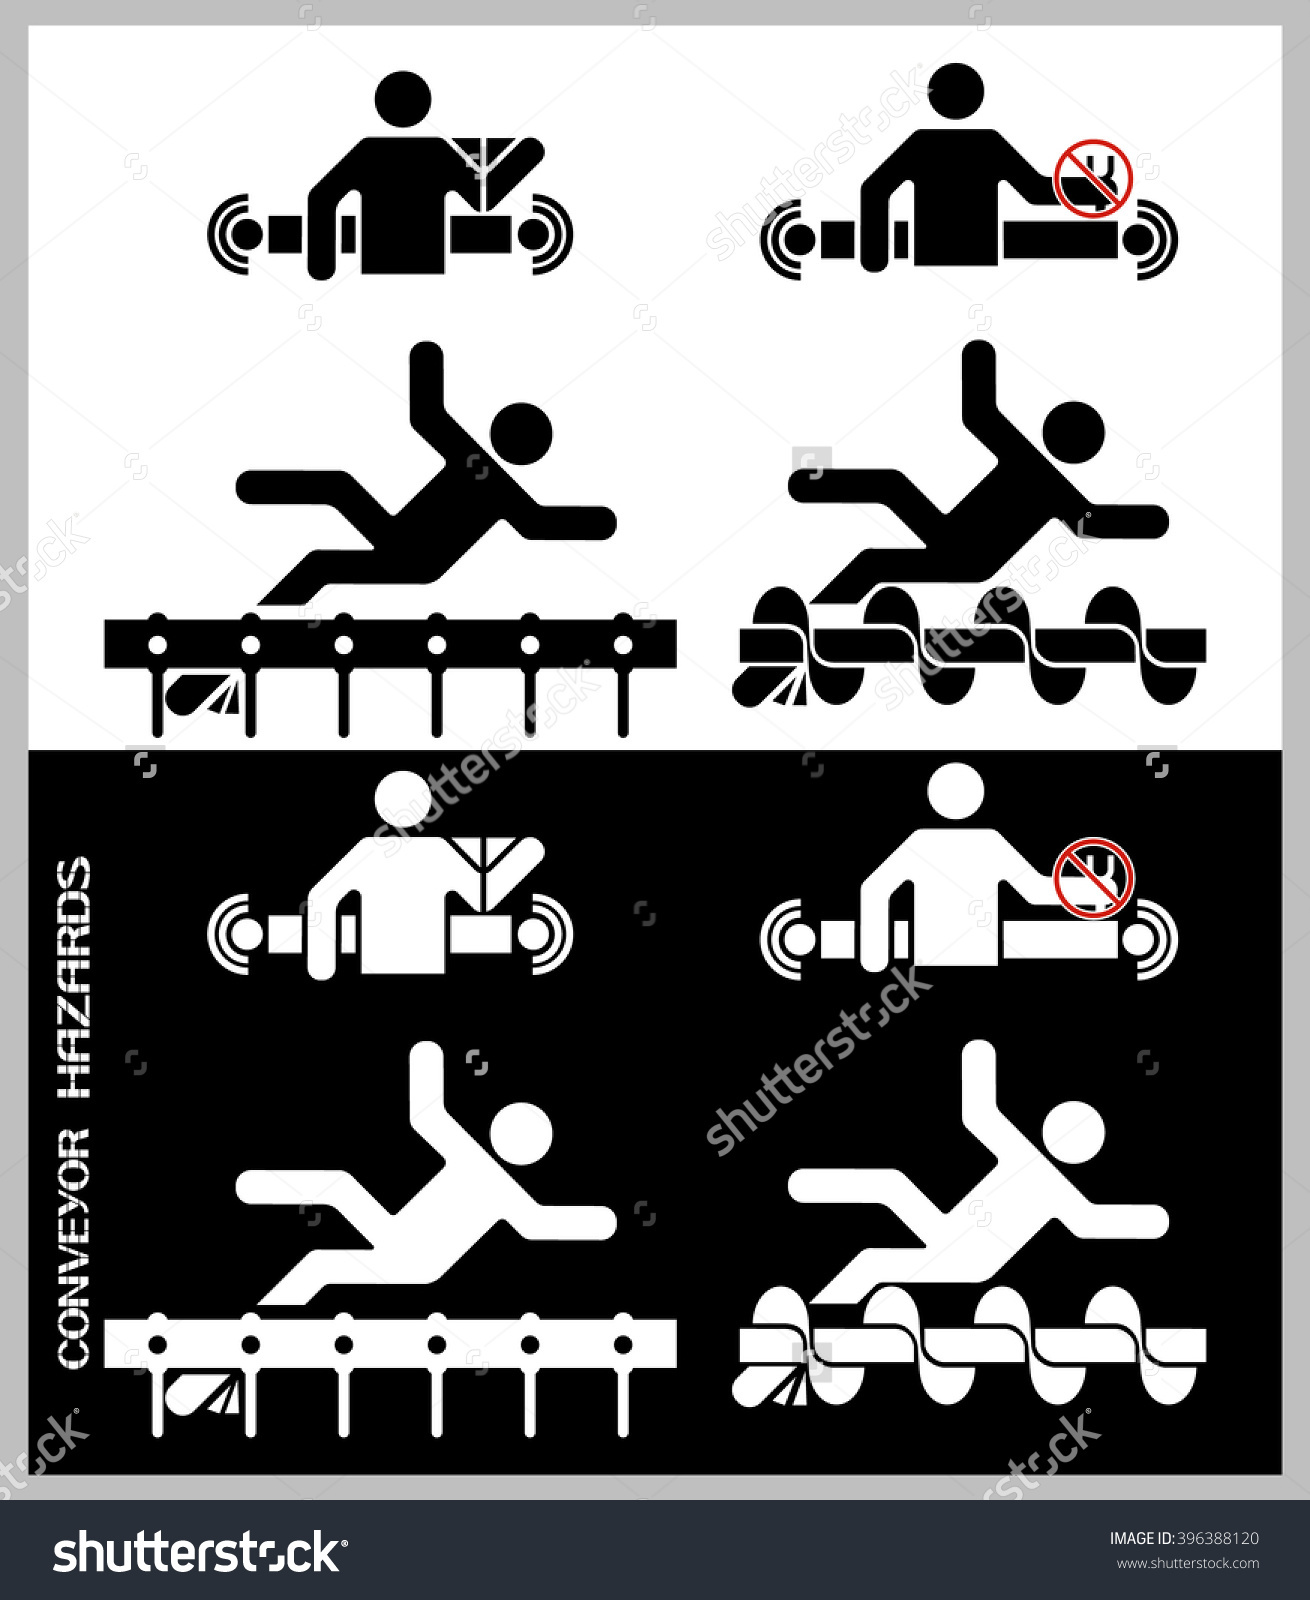 Dangerous Working Conditions Clipart.